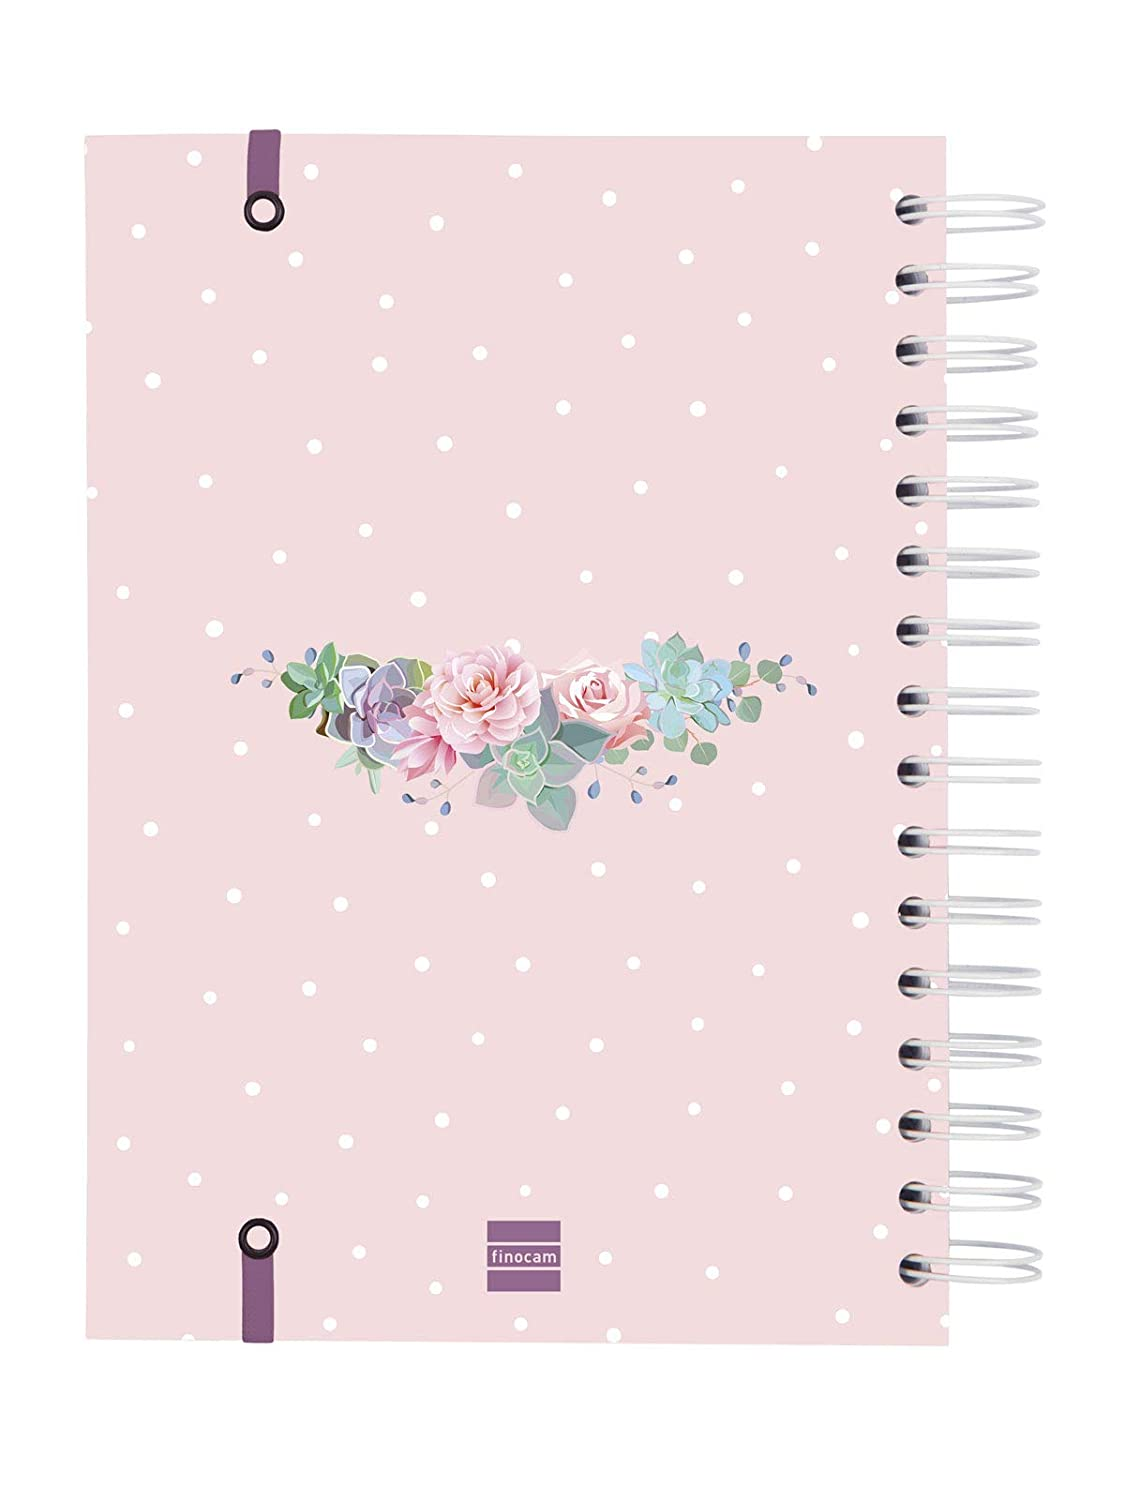 Amazon.com : Finocam 760061419 Daily Planner 2019 : Office ...